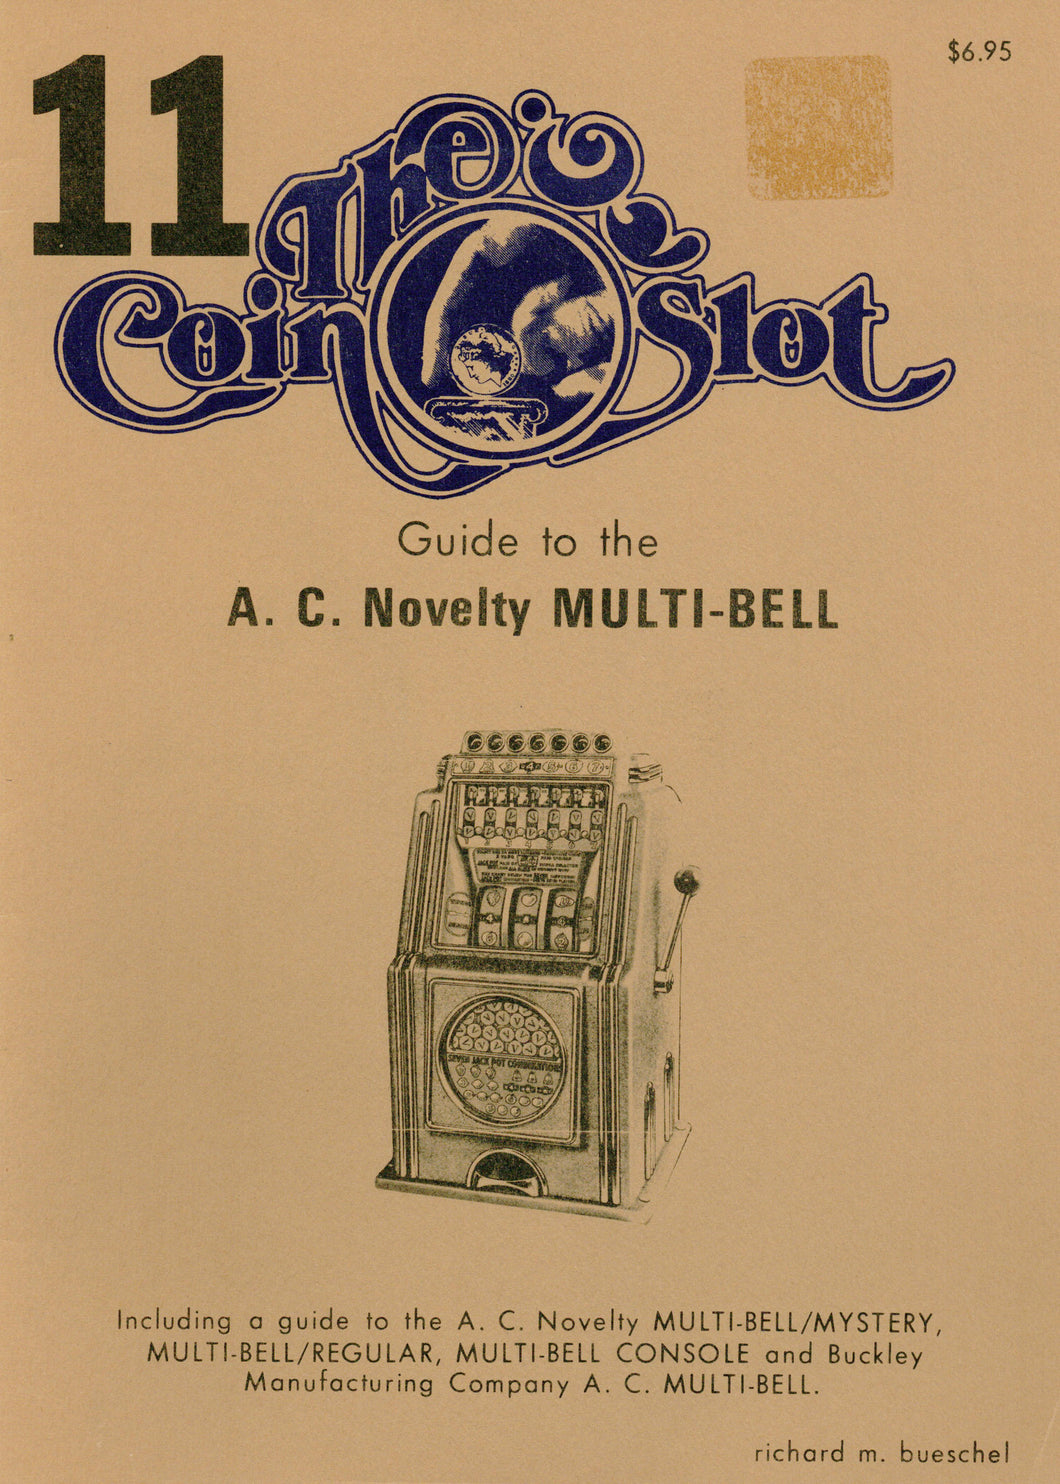 Coin Slot #11. Guide to the A.C. Novelty Multi-Bell